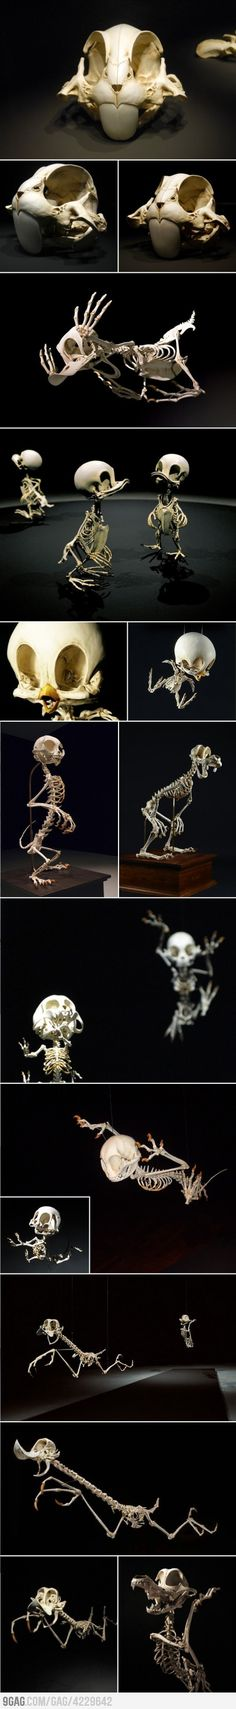 Skeletons of some Cartoon characters